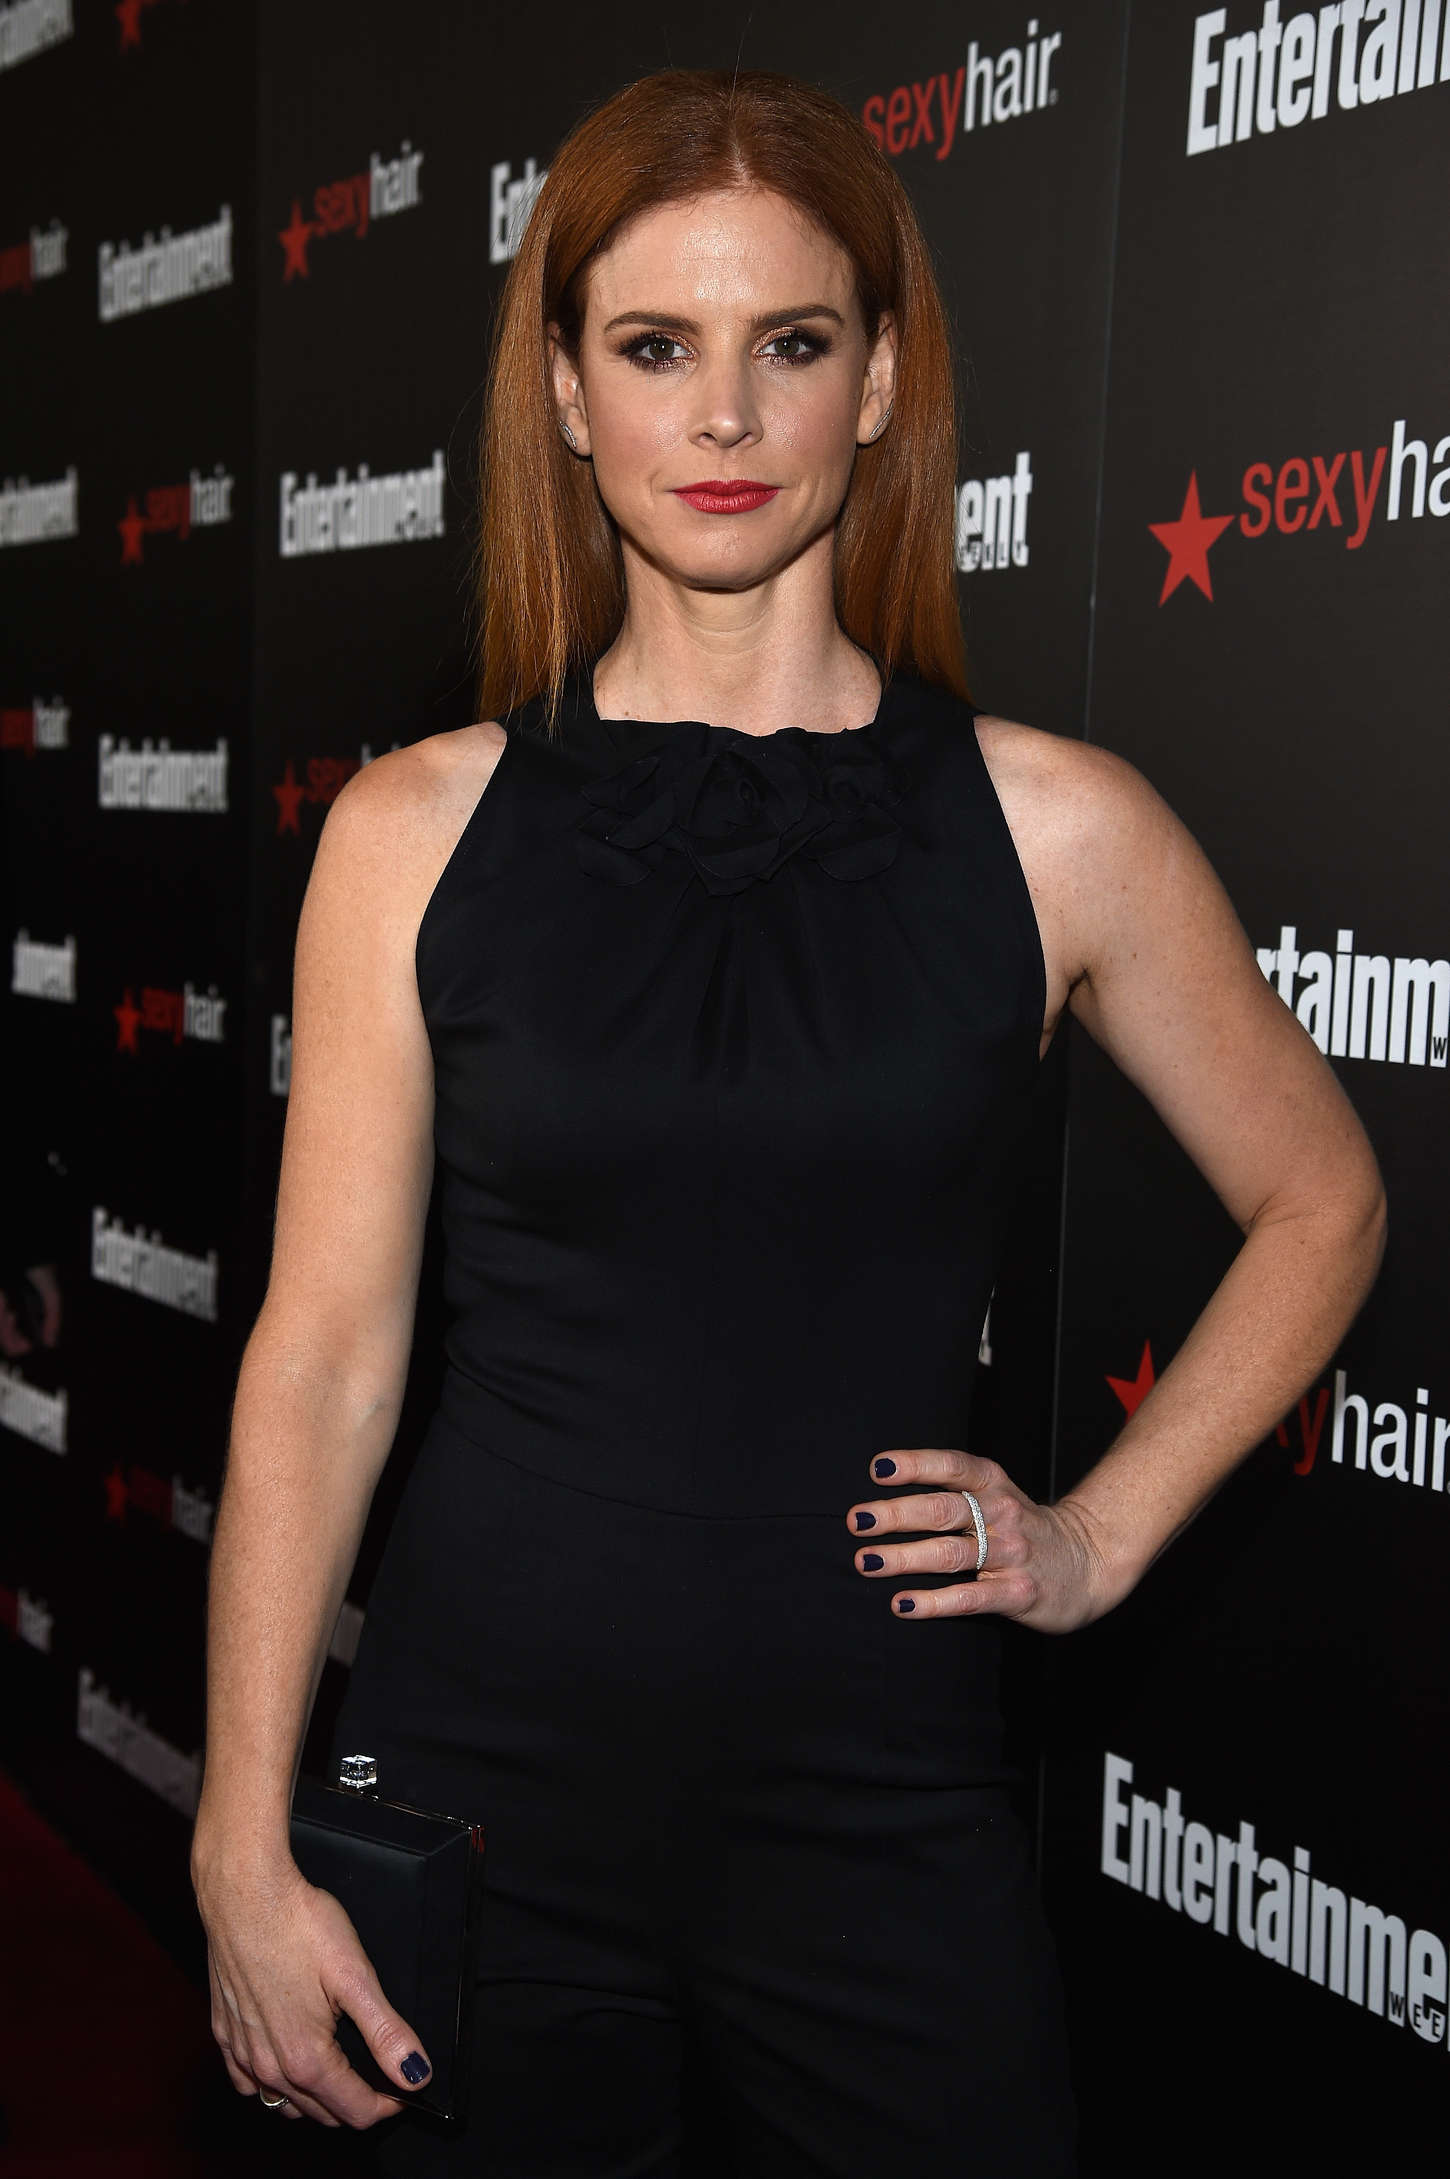 Sarah Rafferty Entertainment Weeklys SAG Awards Nominees in Los Angeles